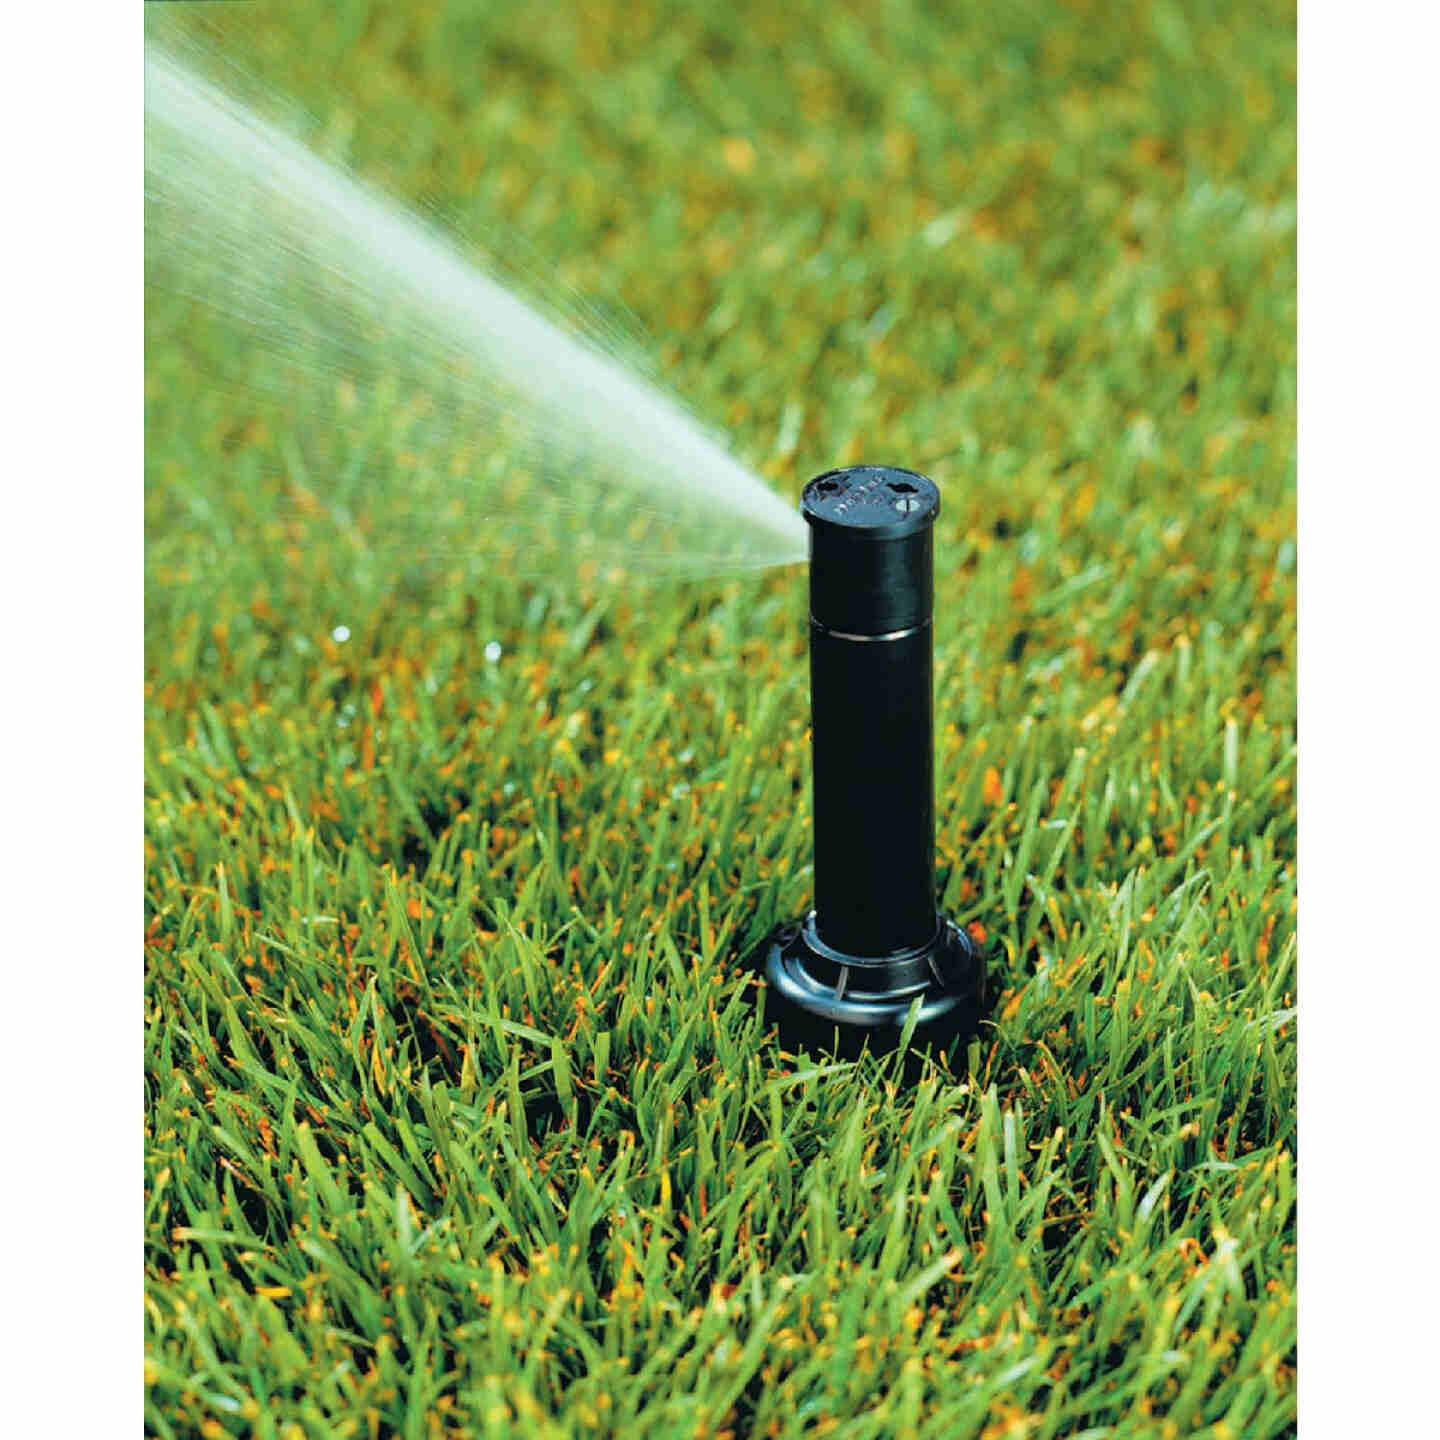 Rain Bird 4 In. 40 Deg. to 360 Deg. Gear Drive Head Pop-Up Rotor Sprinkler Image 2